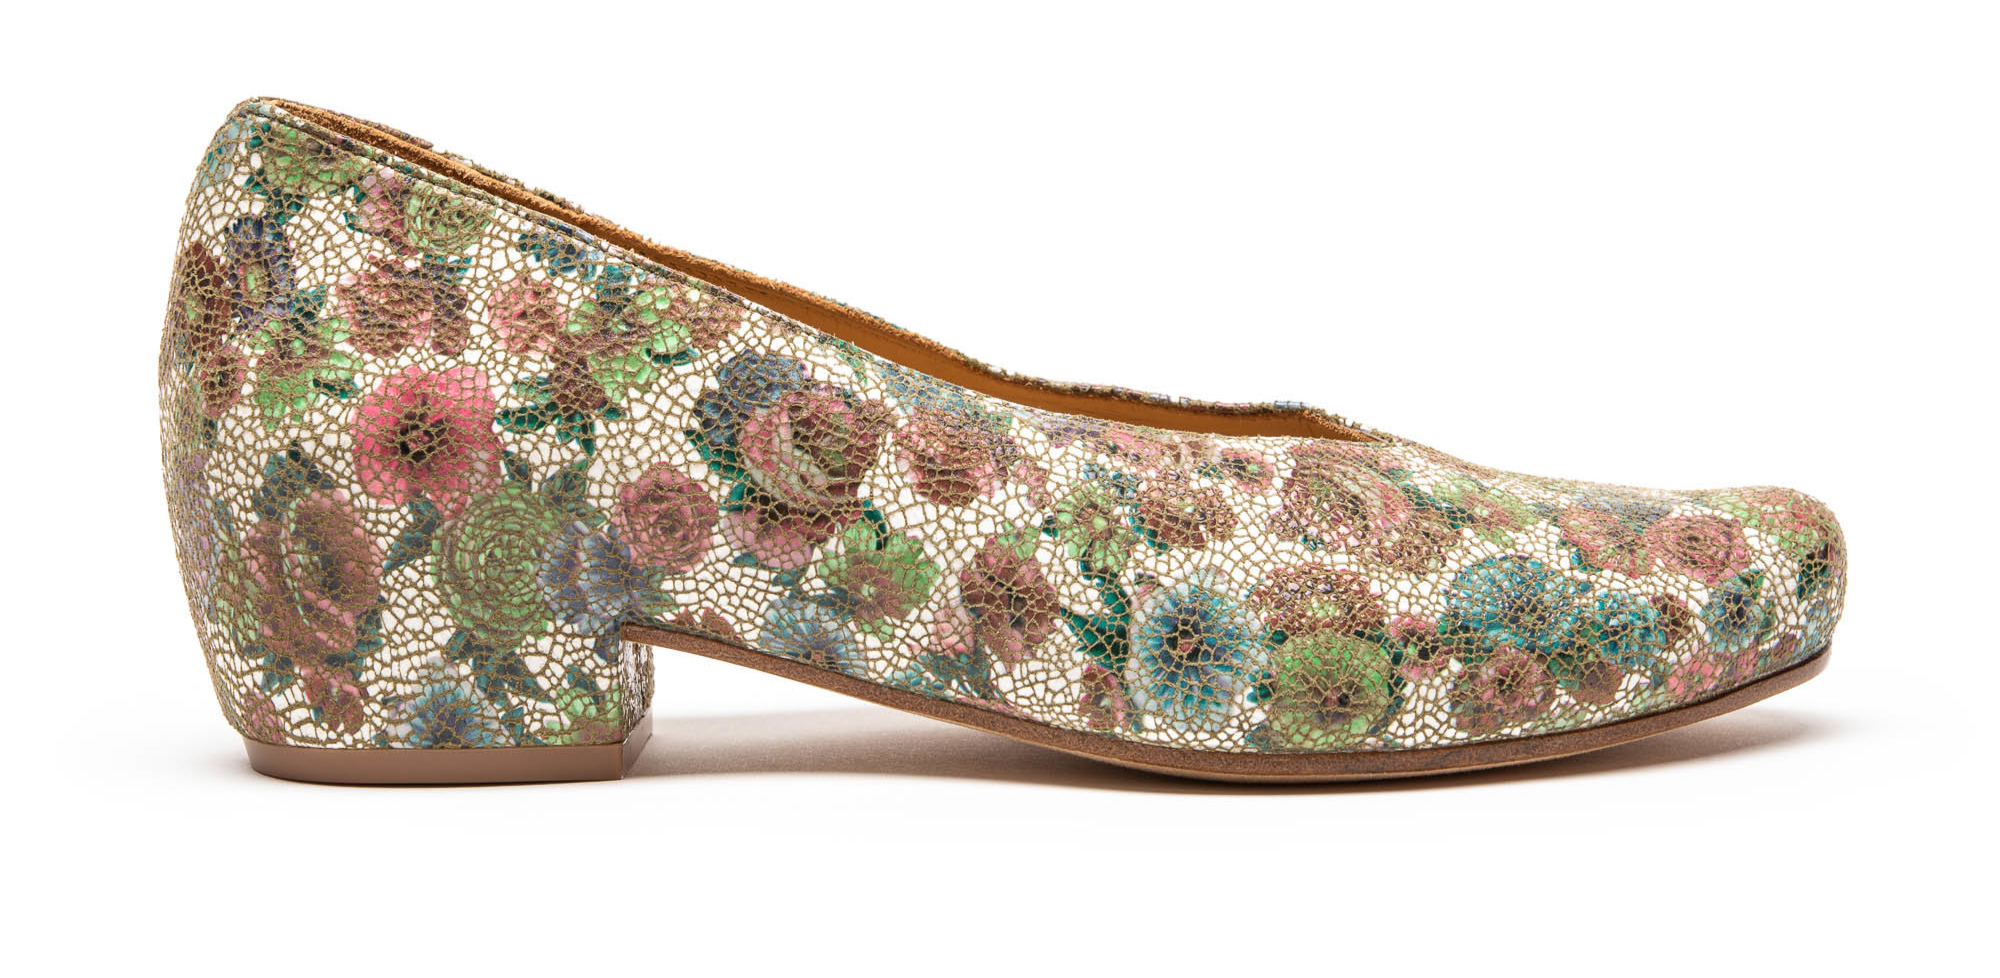 Luxury leather mid heel shoe in floral print by London designer Tracey Neuls